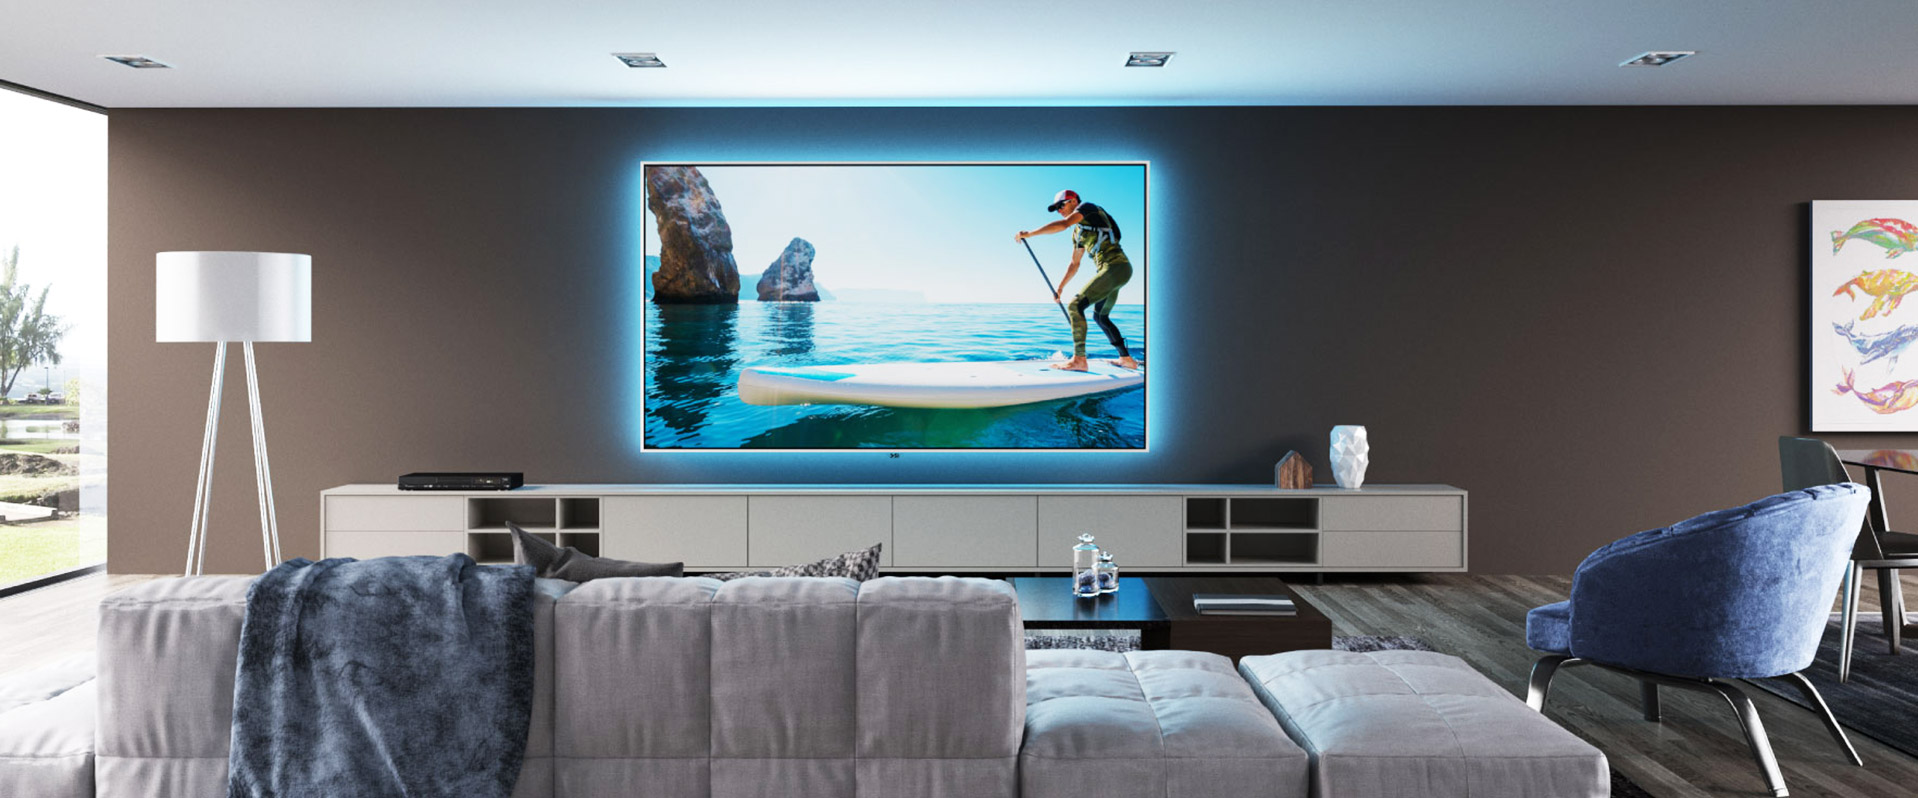 Home Cinema | Screen Innovations | Unilet Sound & Vision